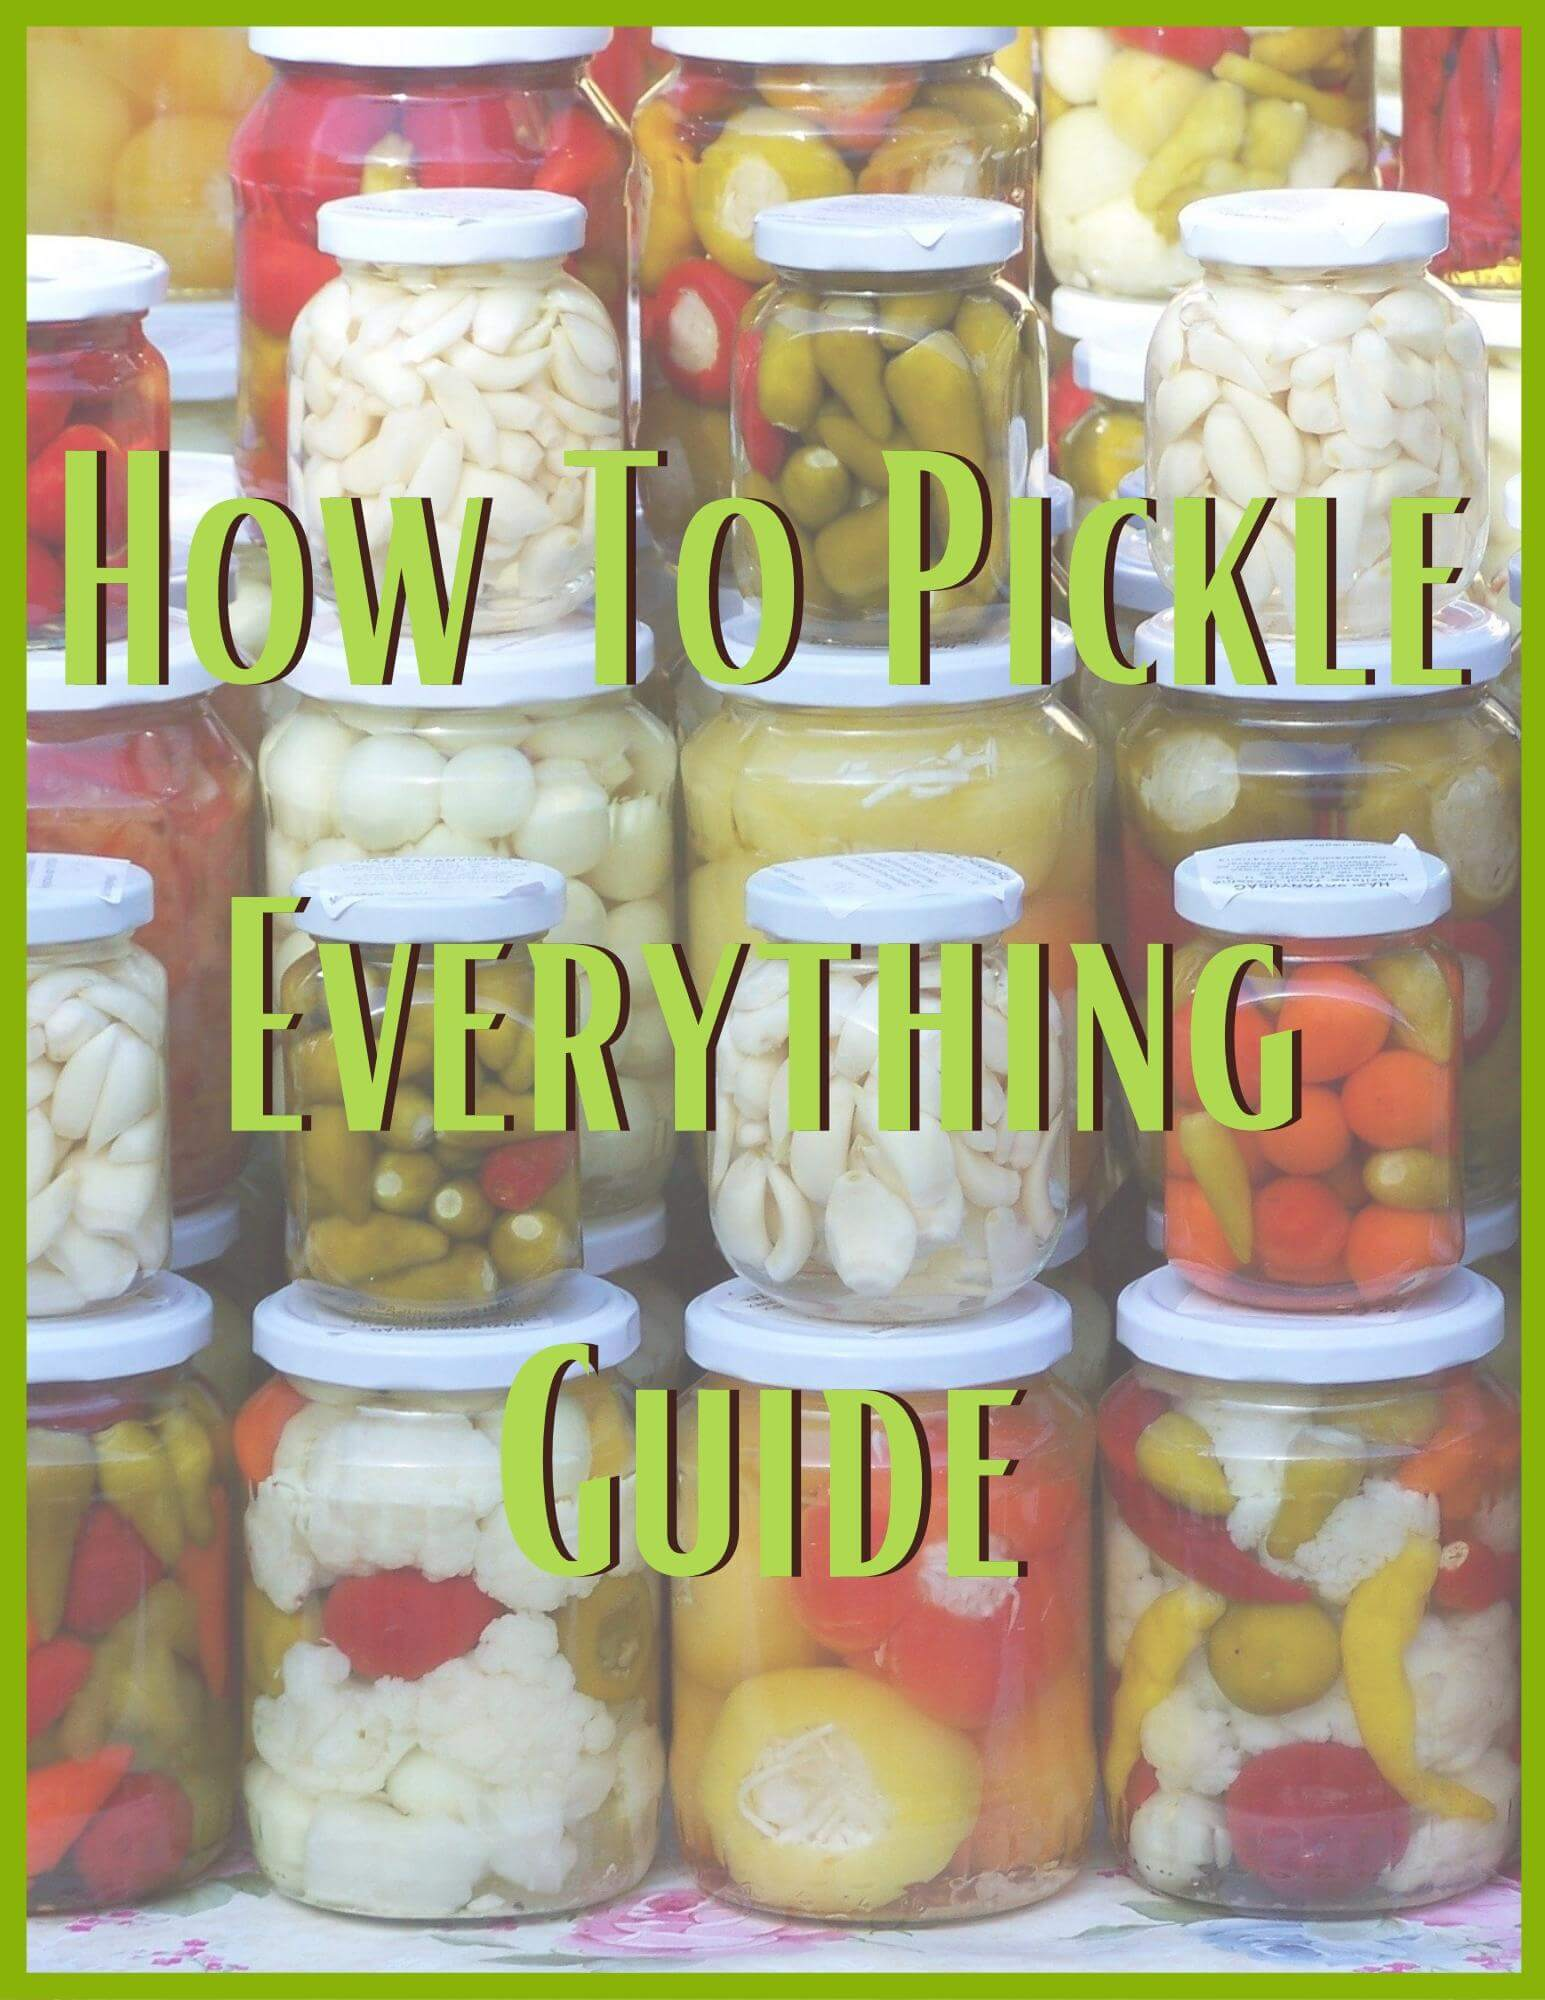 how to pickle everything guide